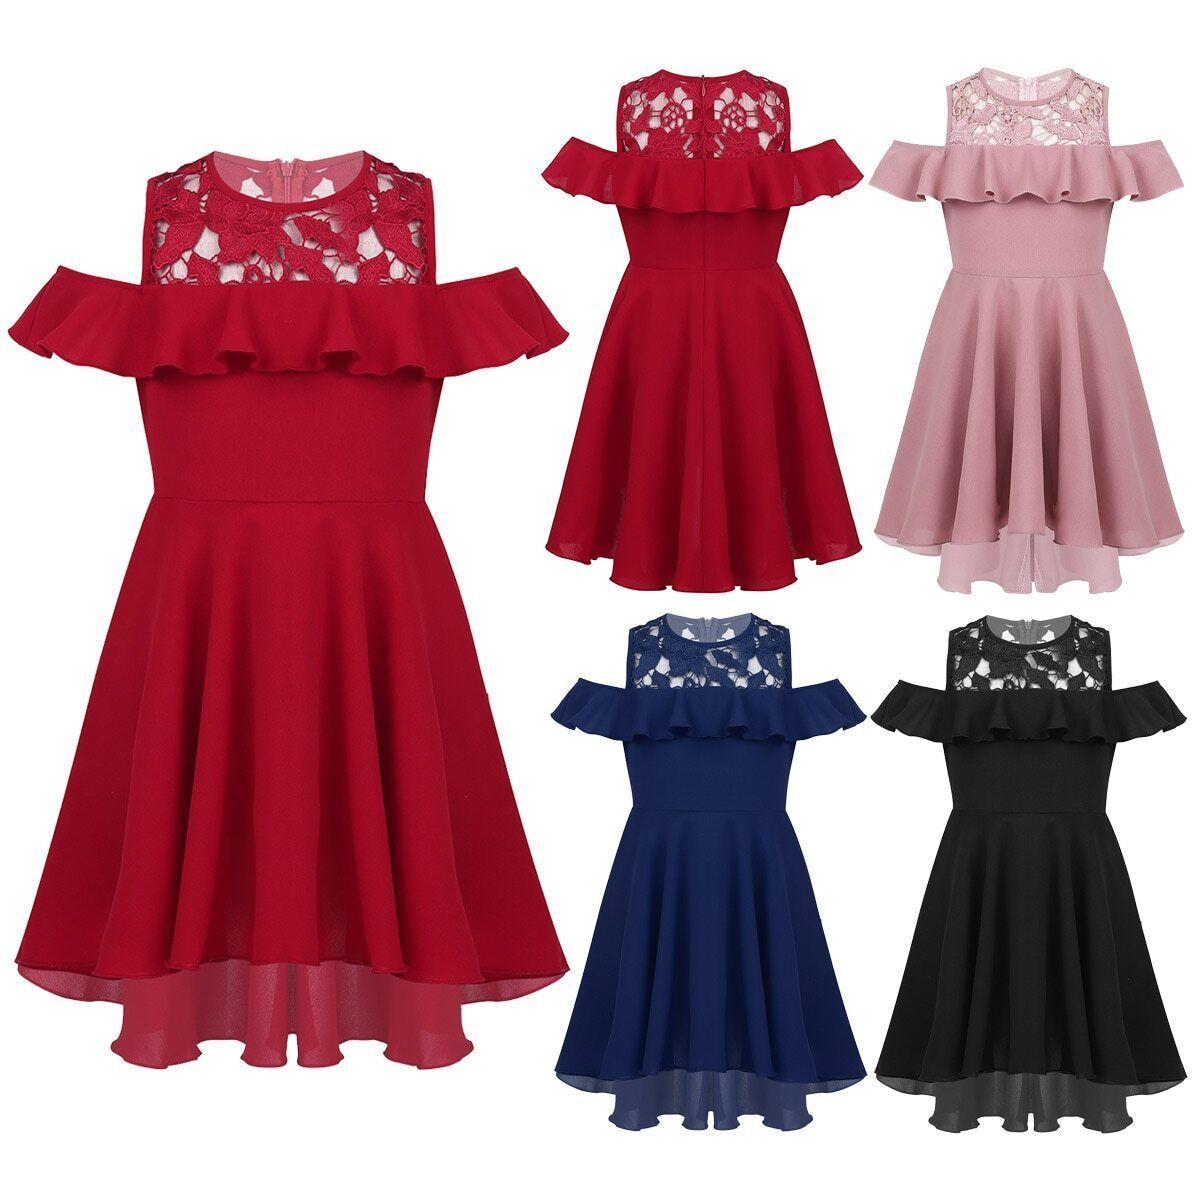 Party dresses for 6 year olds  Cute dresses for party, Dresses